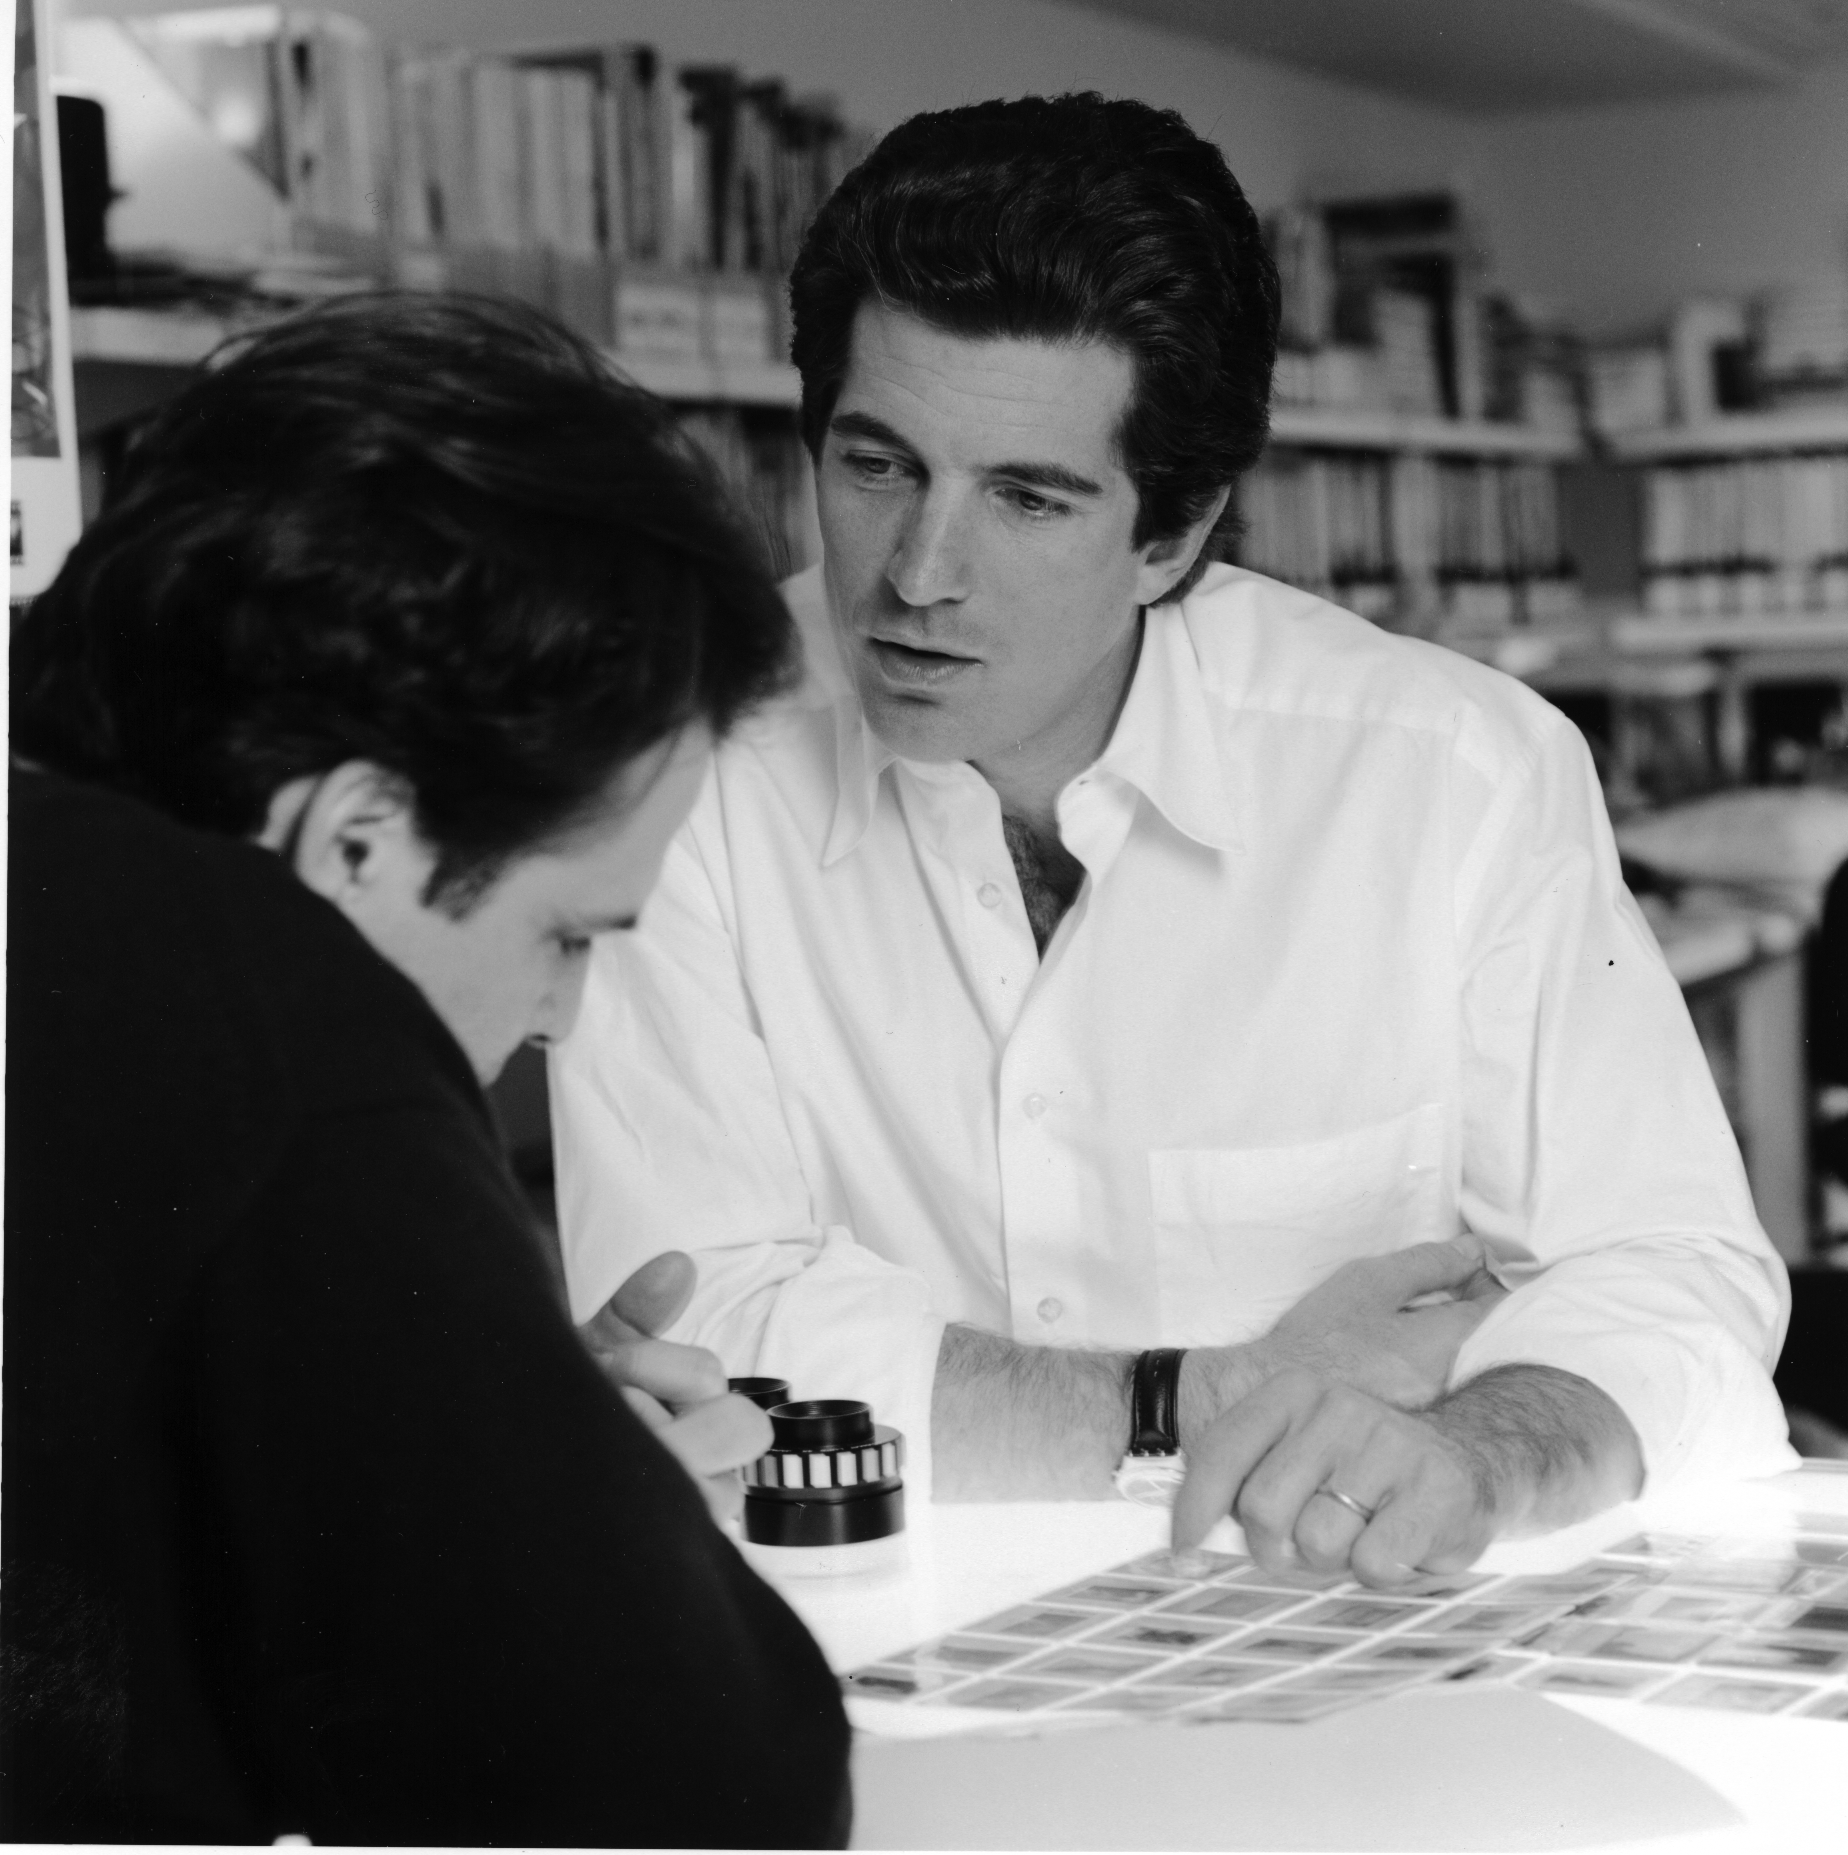 Kennedy (pictured with Matt Berman) clocked long hours at George , sometimes staying past midnight to work on issues.